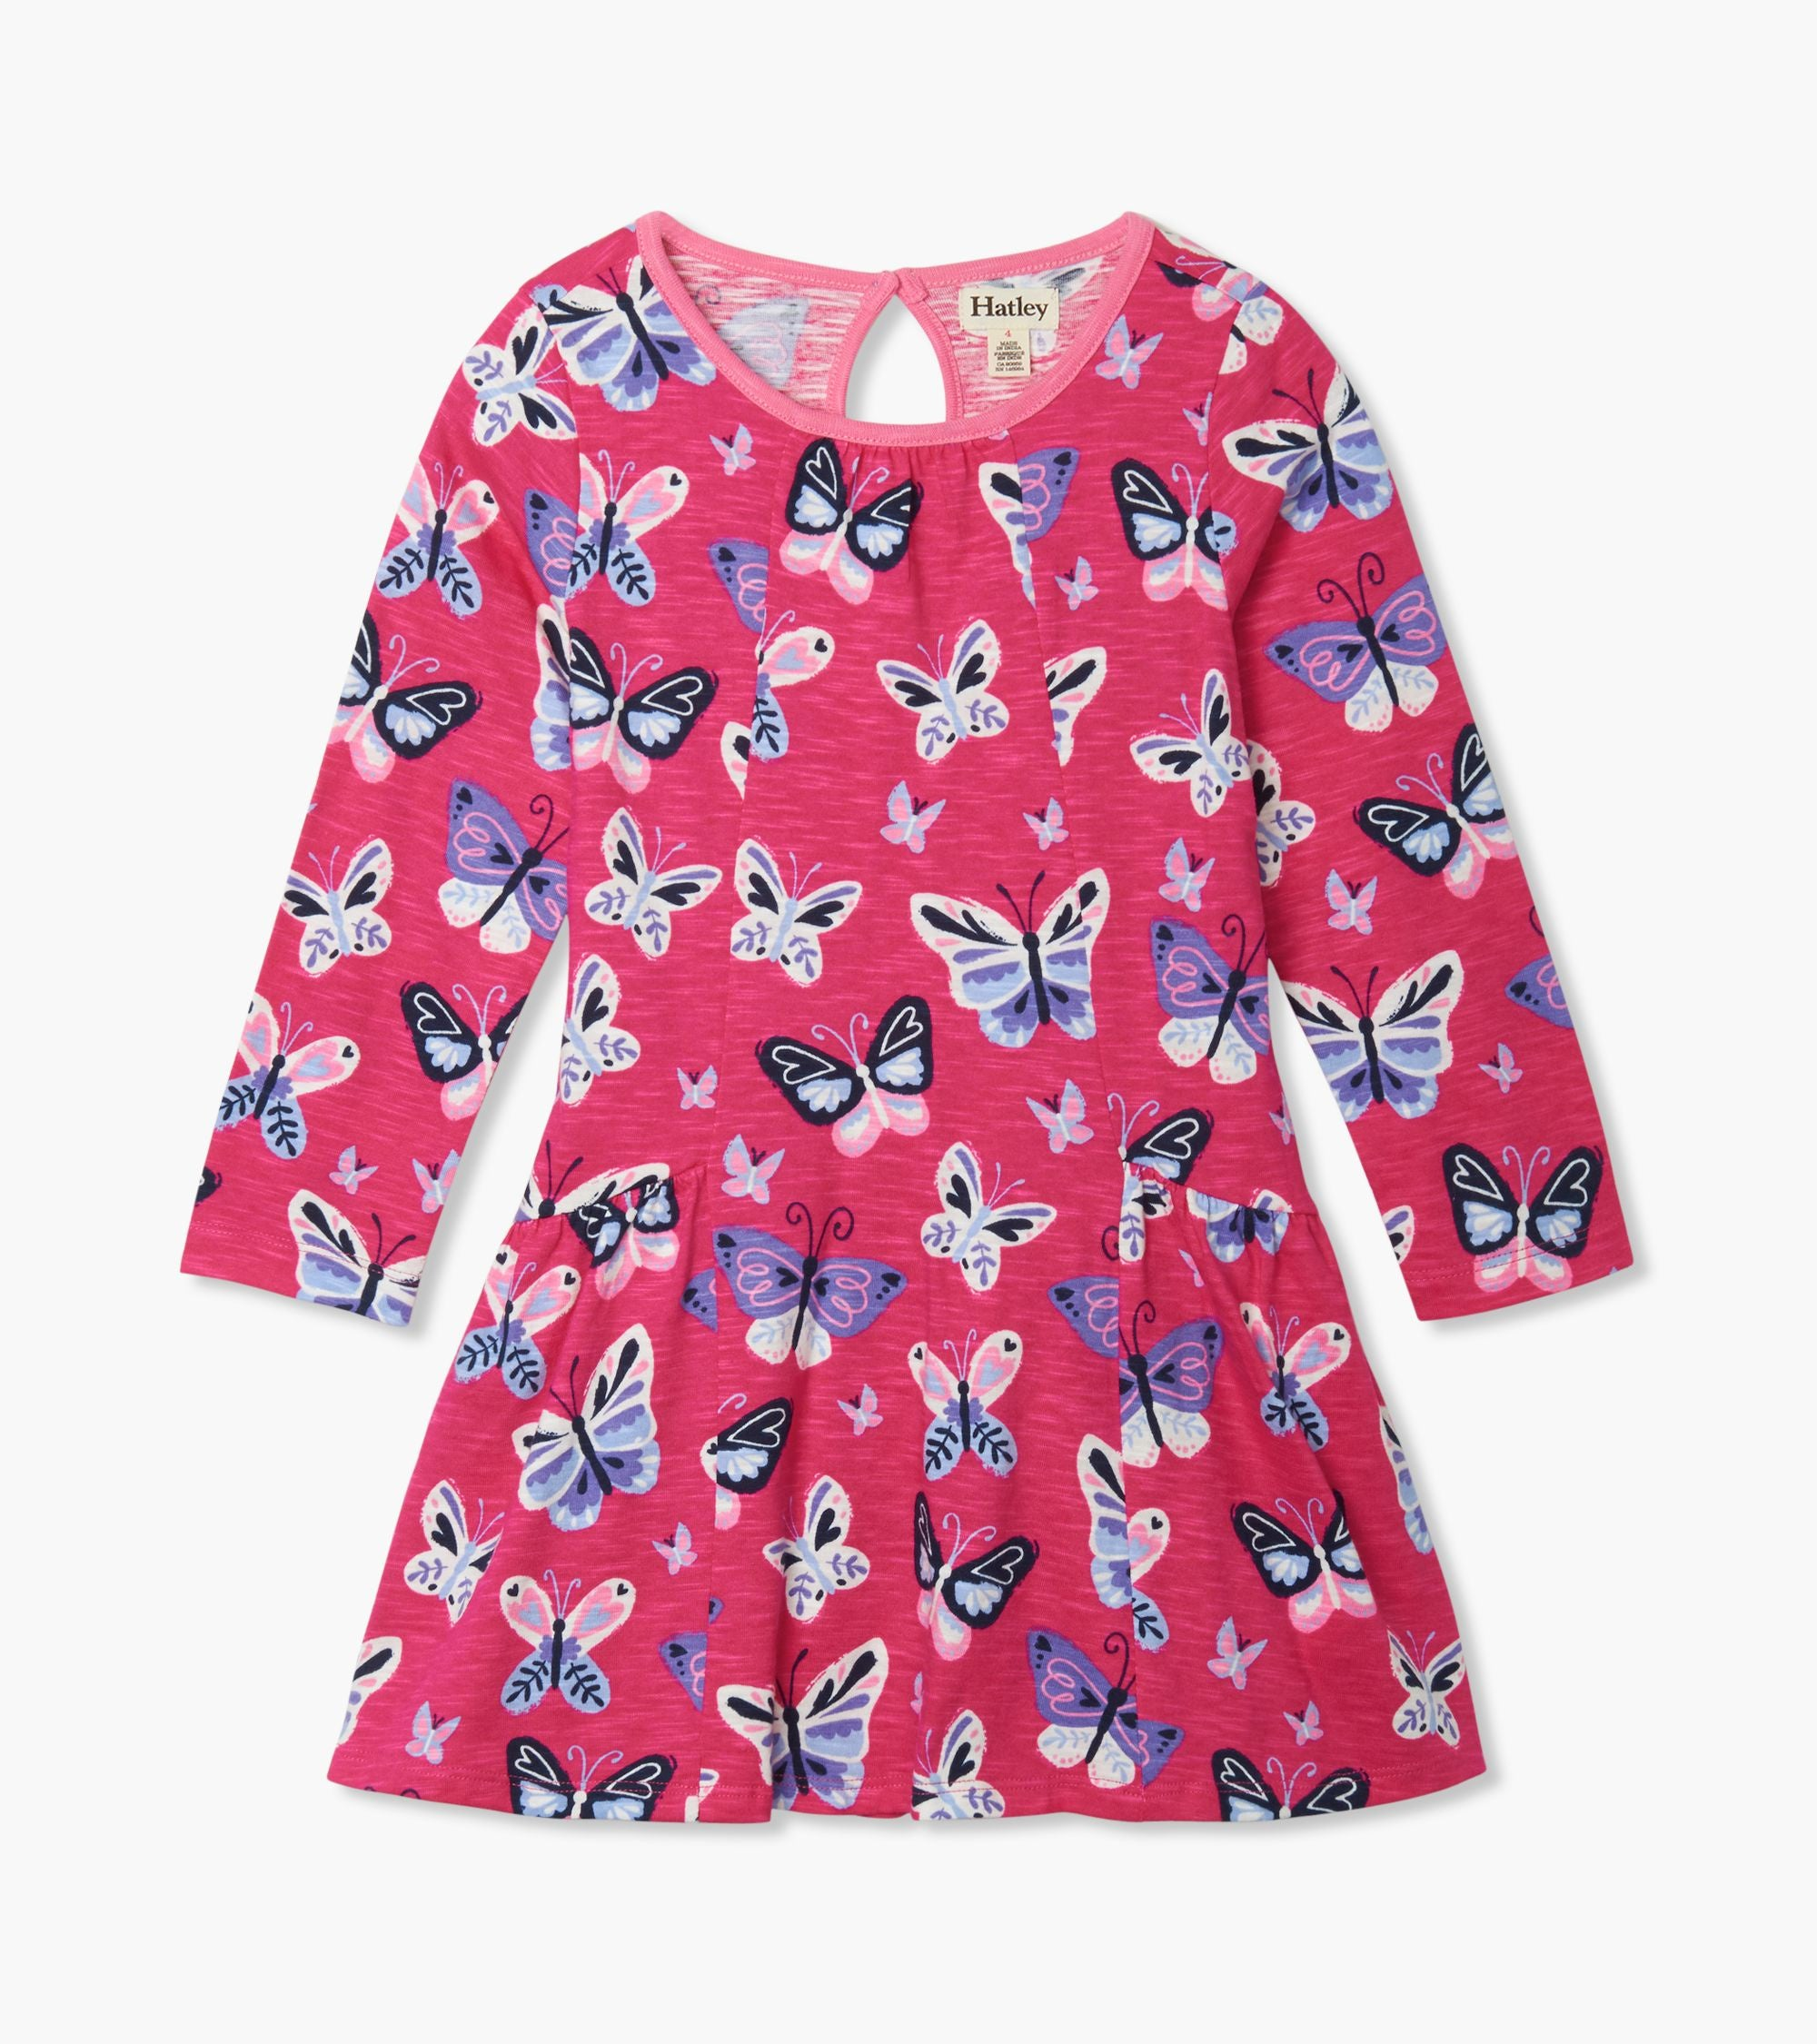 Hatley Butterfly Flounce Dress